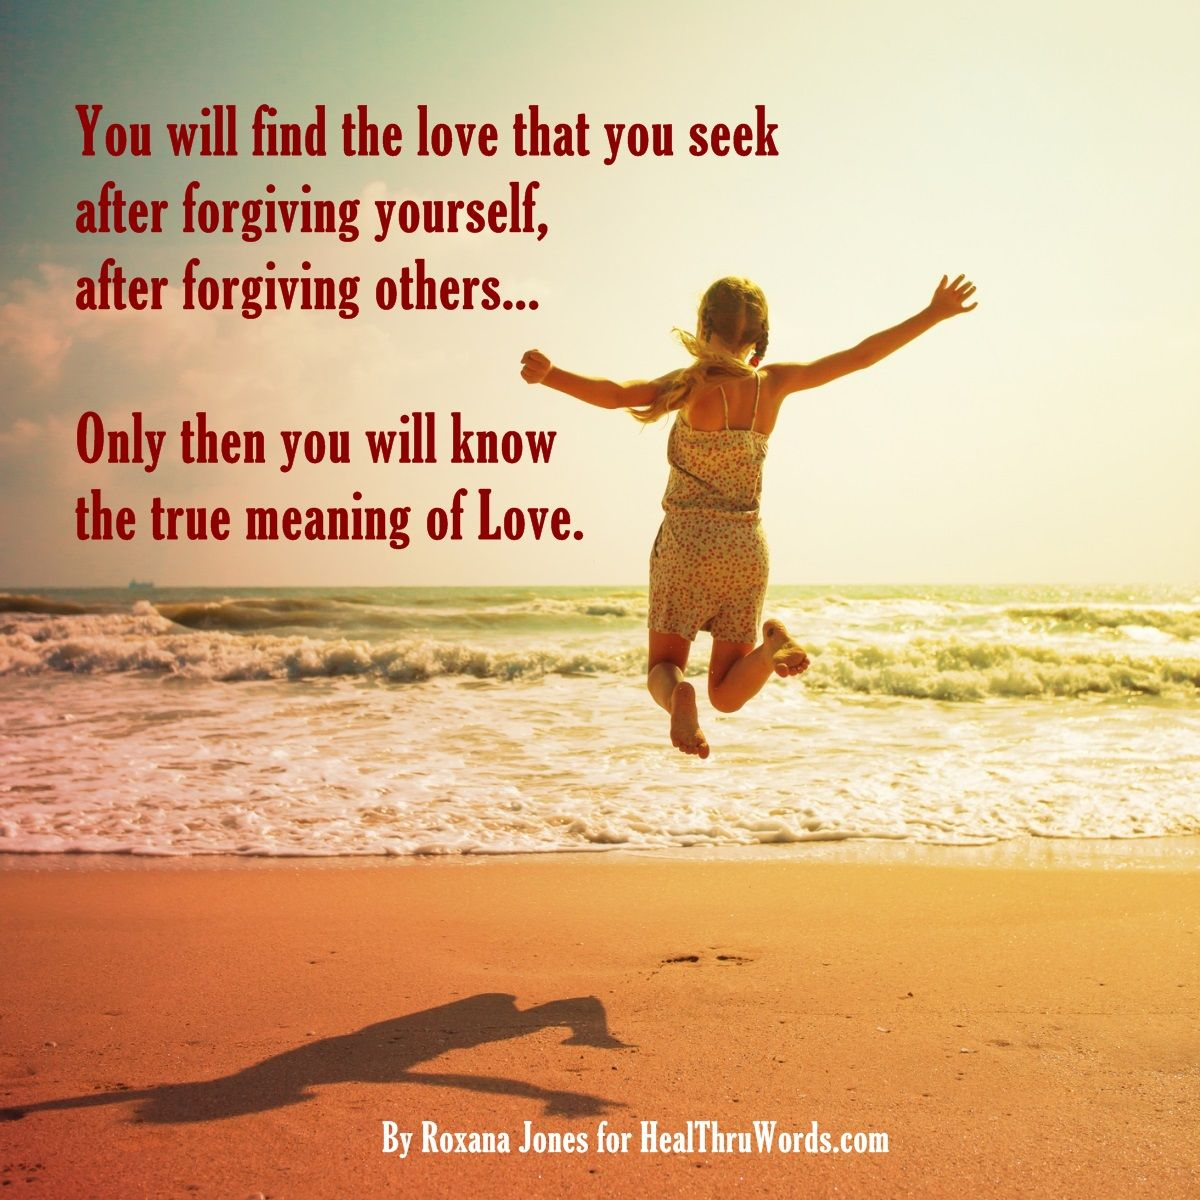 The Meaning Of Love Quotes Daily Inspiration The True Meaning Of Love  Inspiration